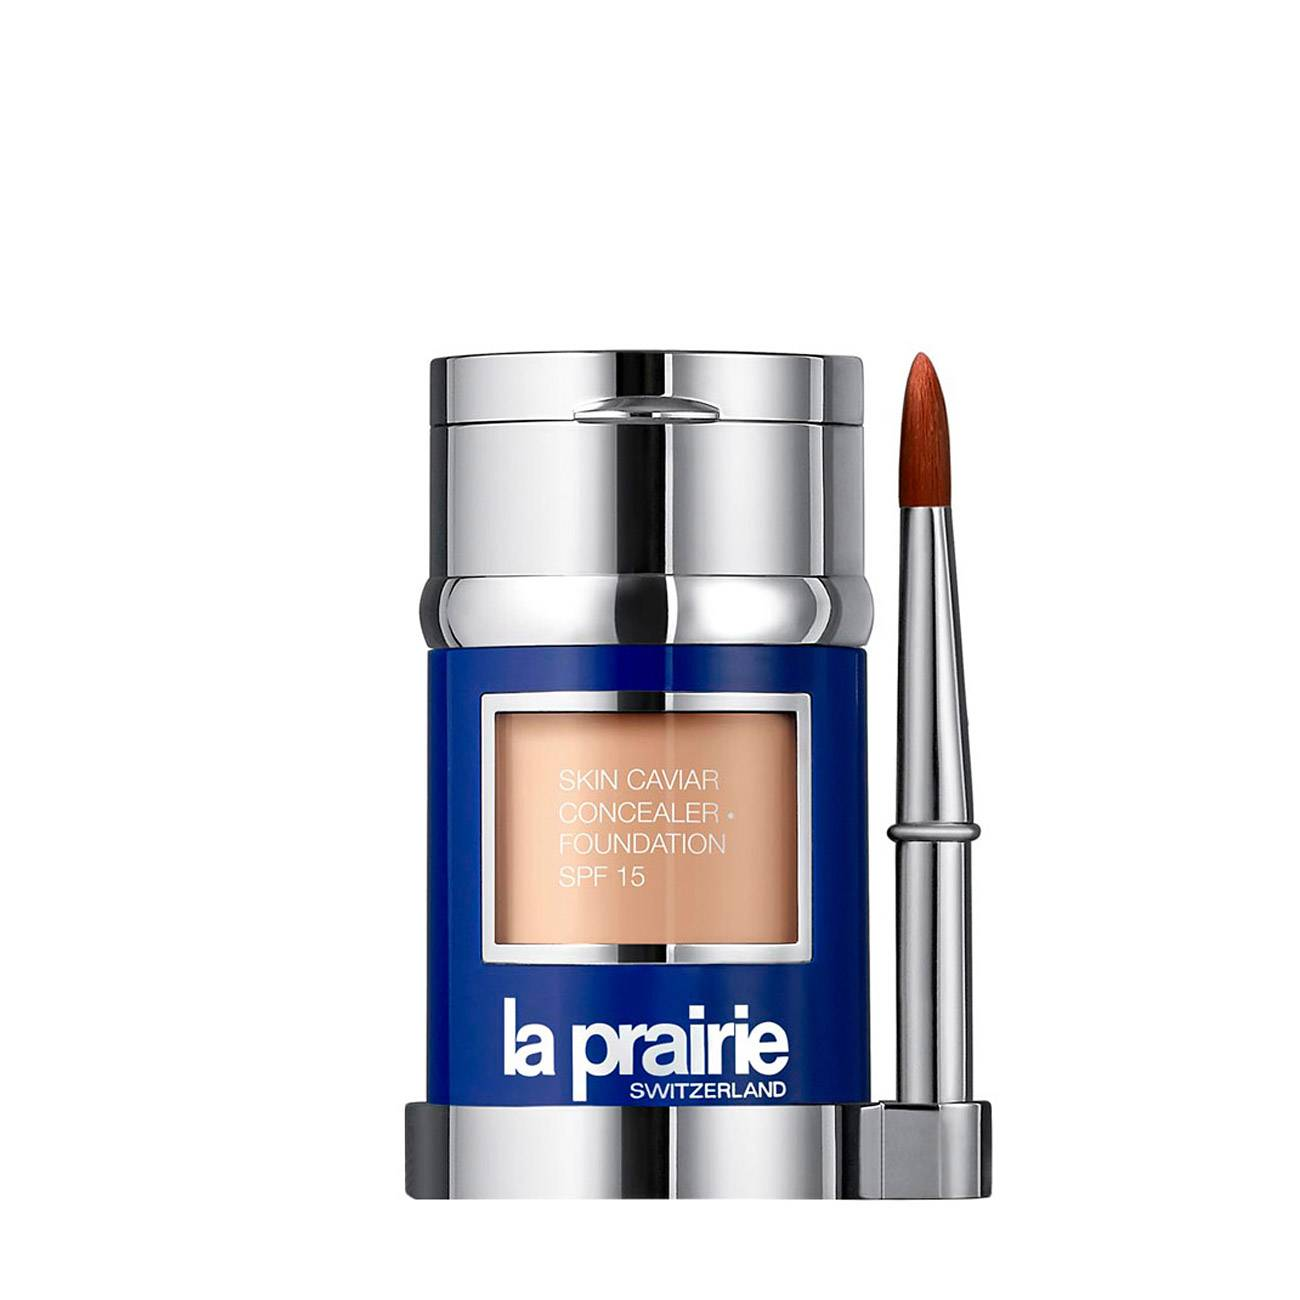 Skin Caviar Concealer Foundation 30 Ml La Prairie imagine 2021 bestvalue.eu